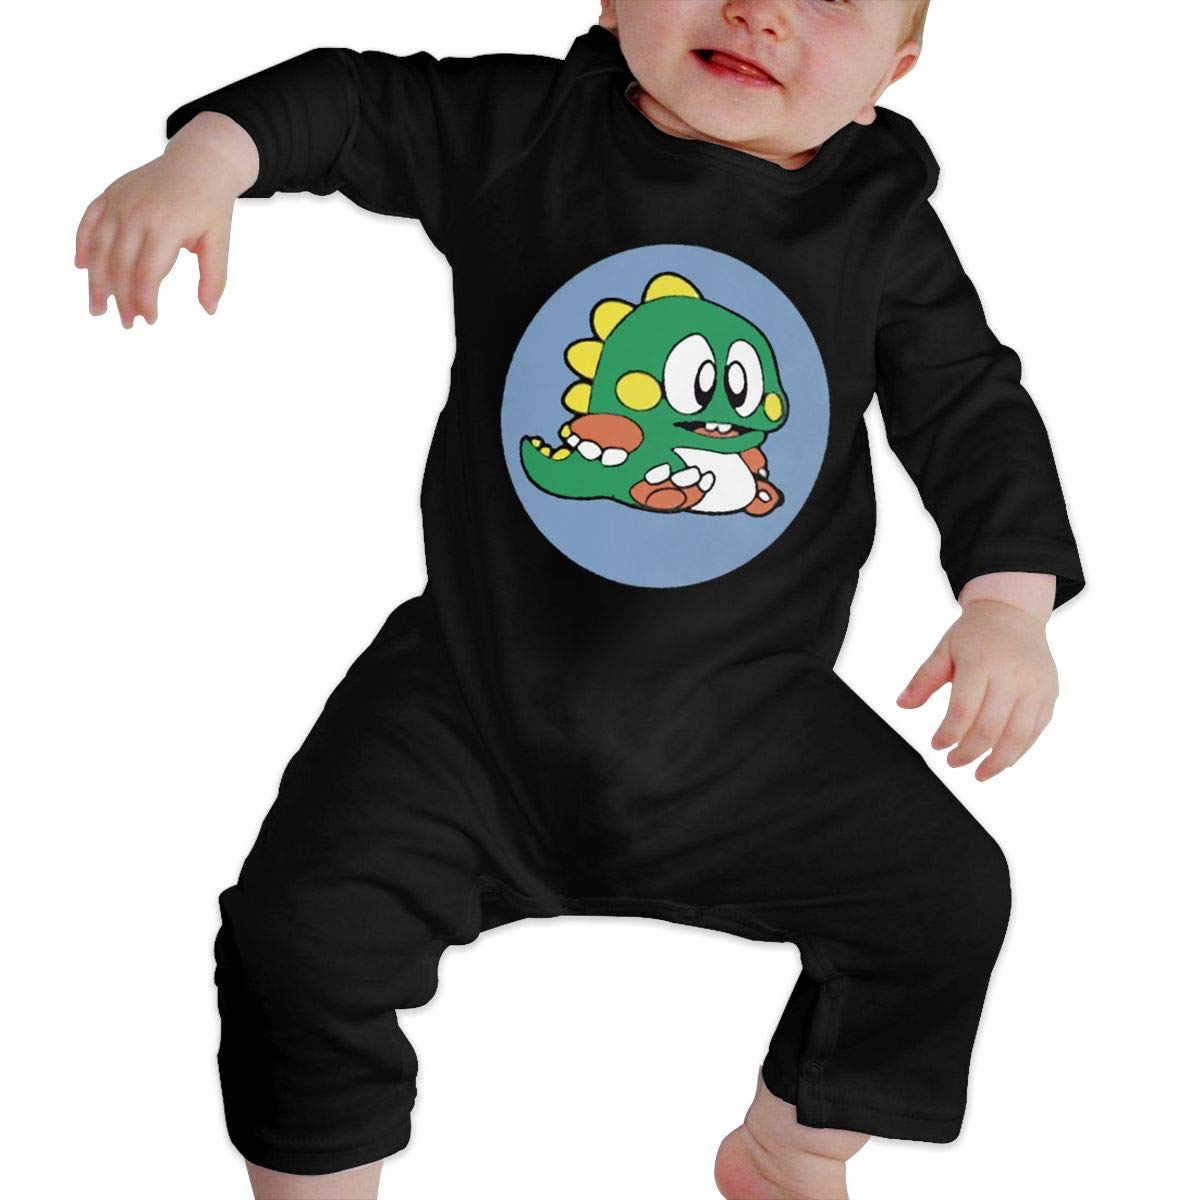 Fasenix Bubble Bobble Newborn Baby Boy Girl Romper Jumpsuit Long Sleeve Bodysuit Overalls Outfits Clothes